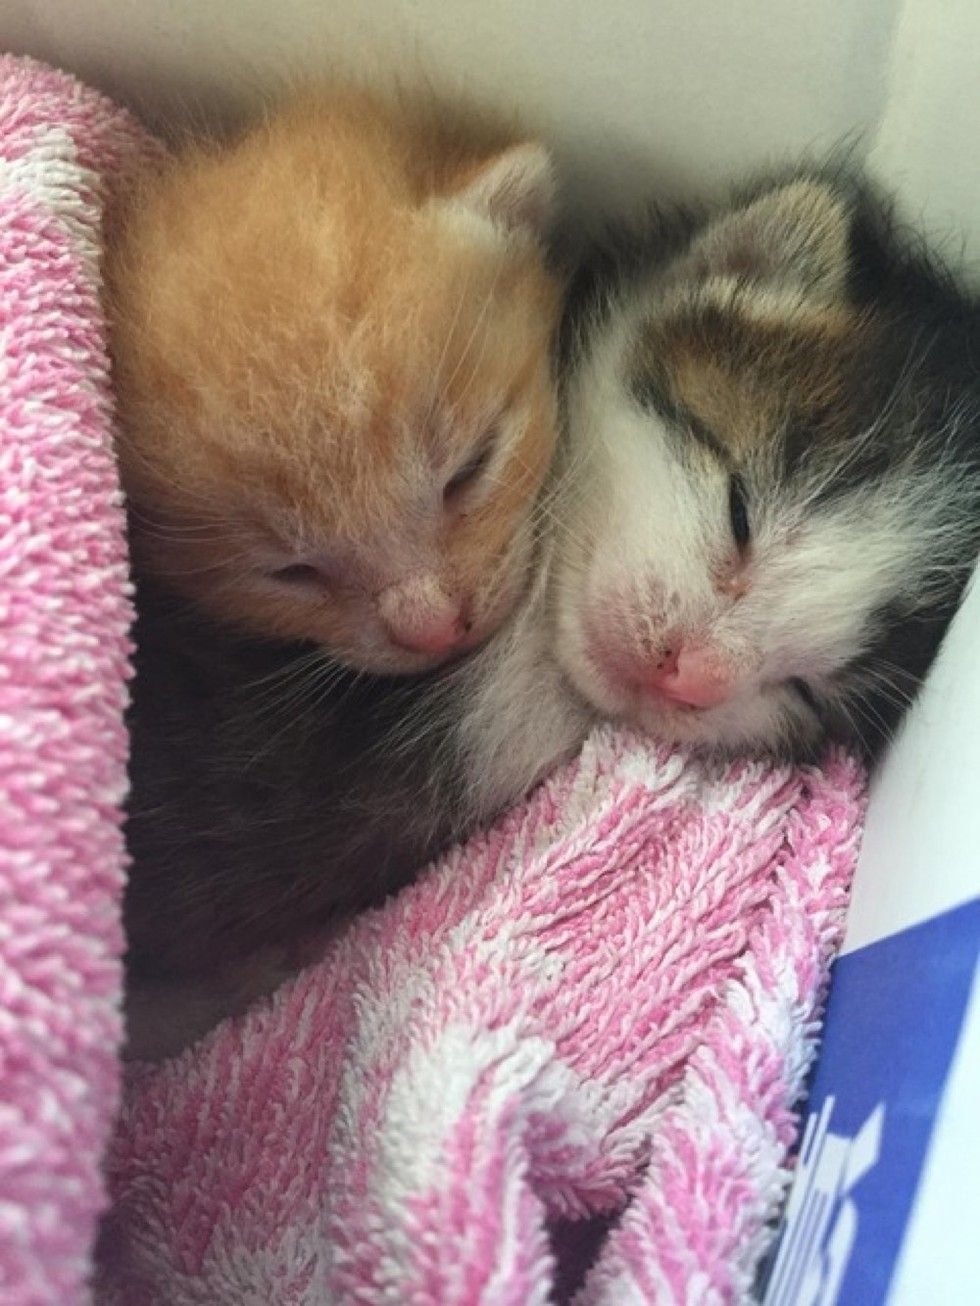 Two Kittens Rescued The Day Before Typhoon Growing Up Together Love Meow Kittens Cutest Cute Cats And Dogs Kittens